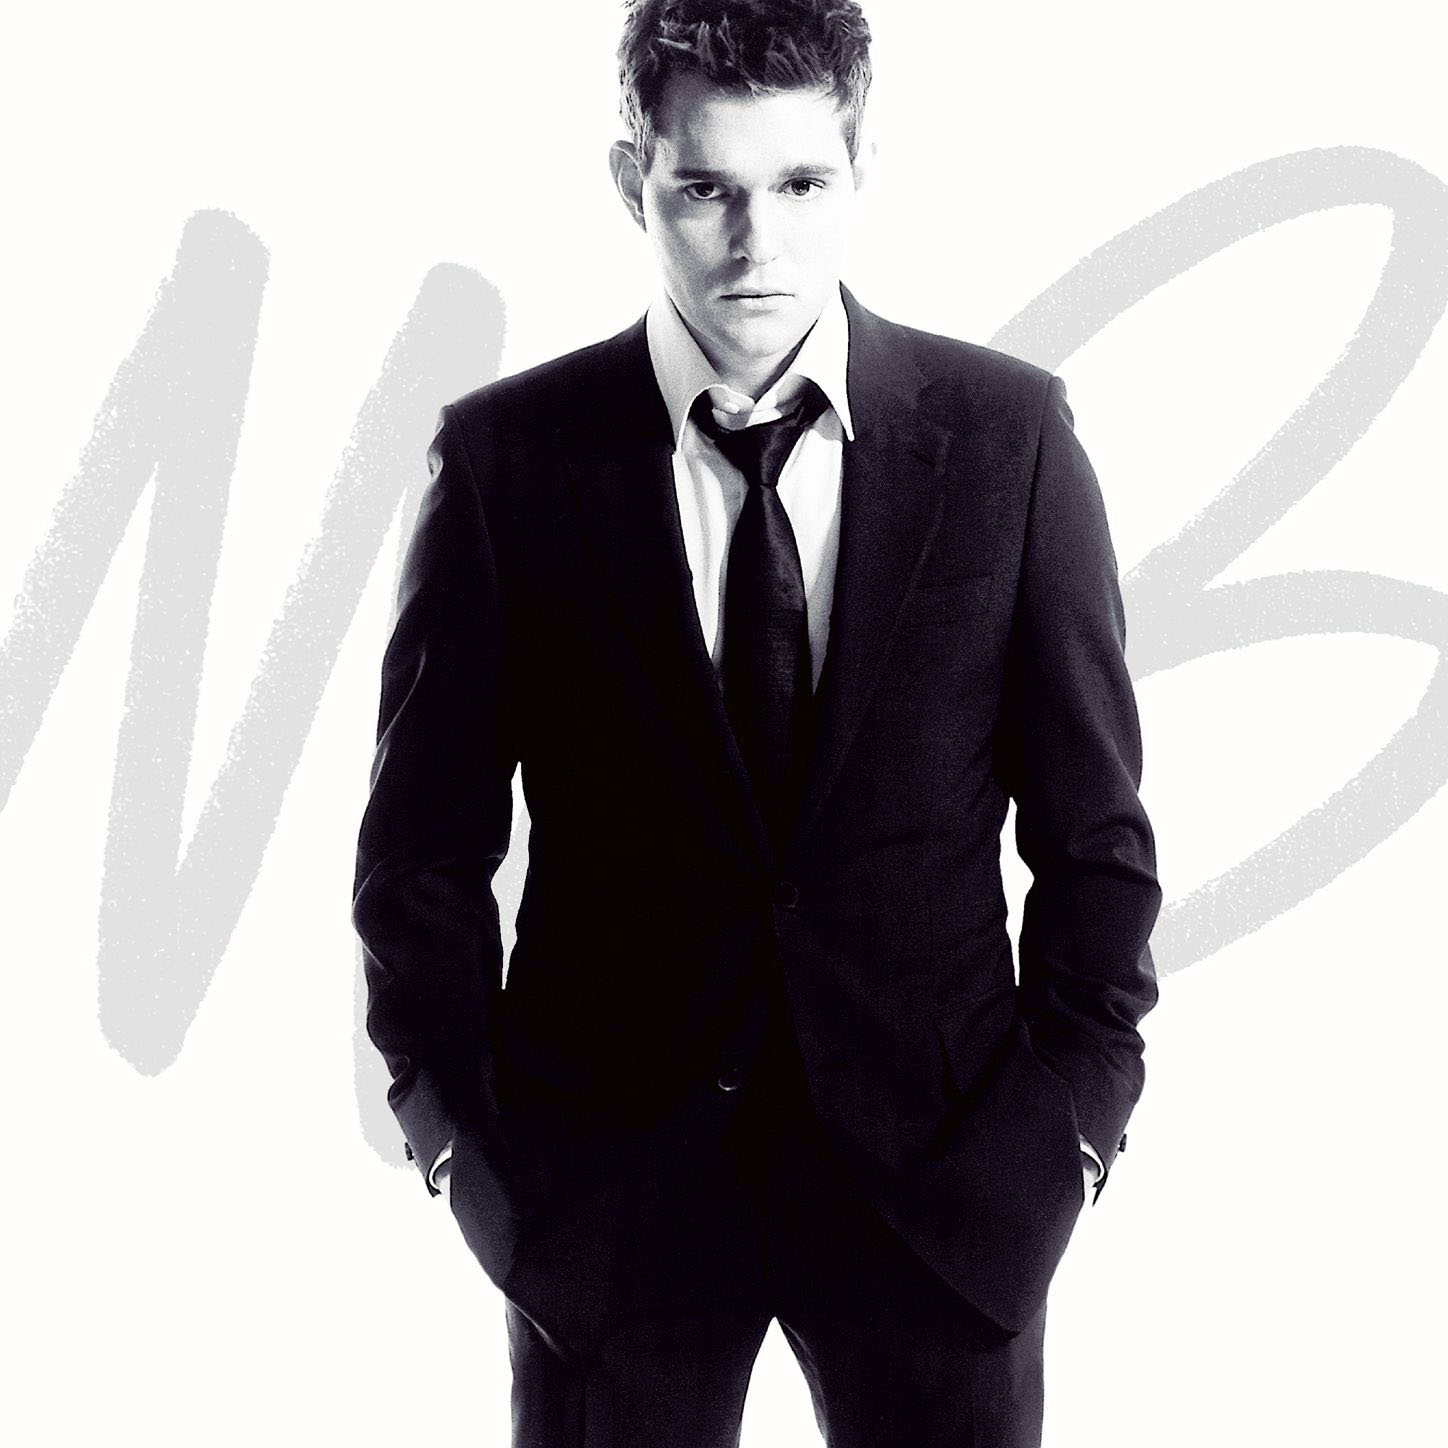 Michael Bublé Hasn't Met Me Yet!